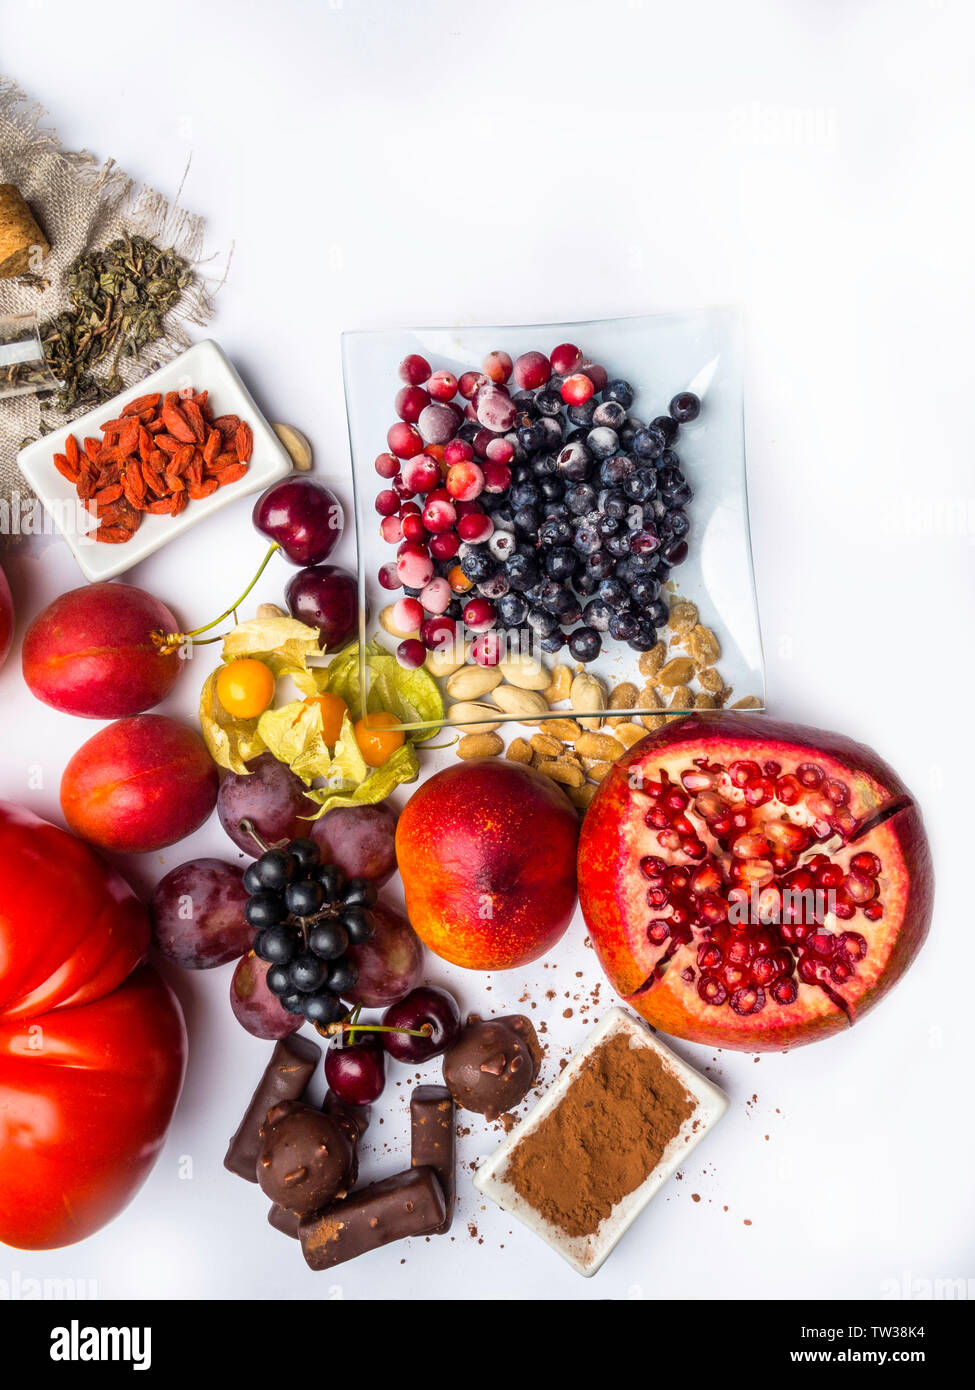 Mix Of Fresh Fruits And Berries Antioxidants Resveratrol Food As